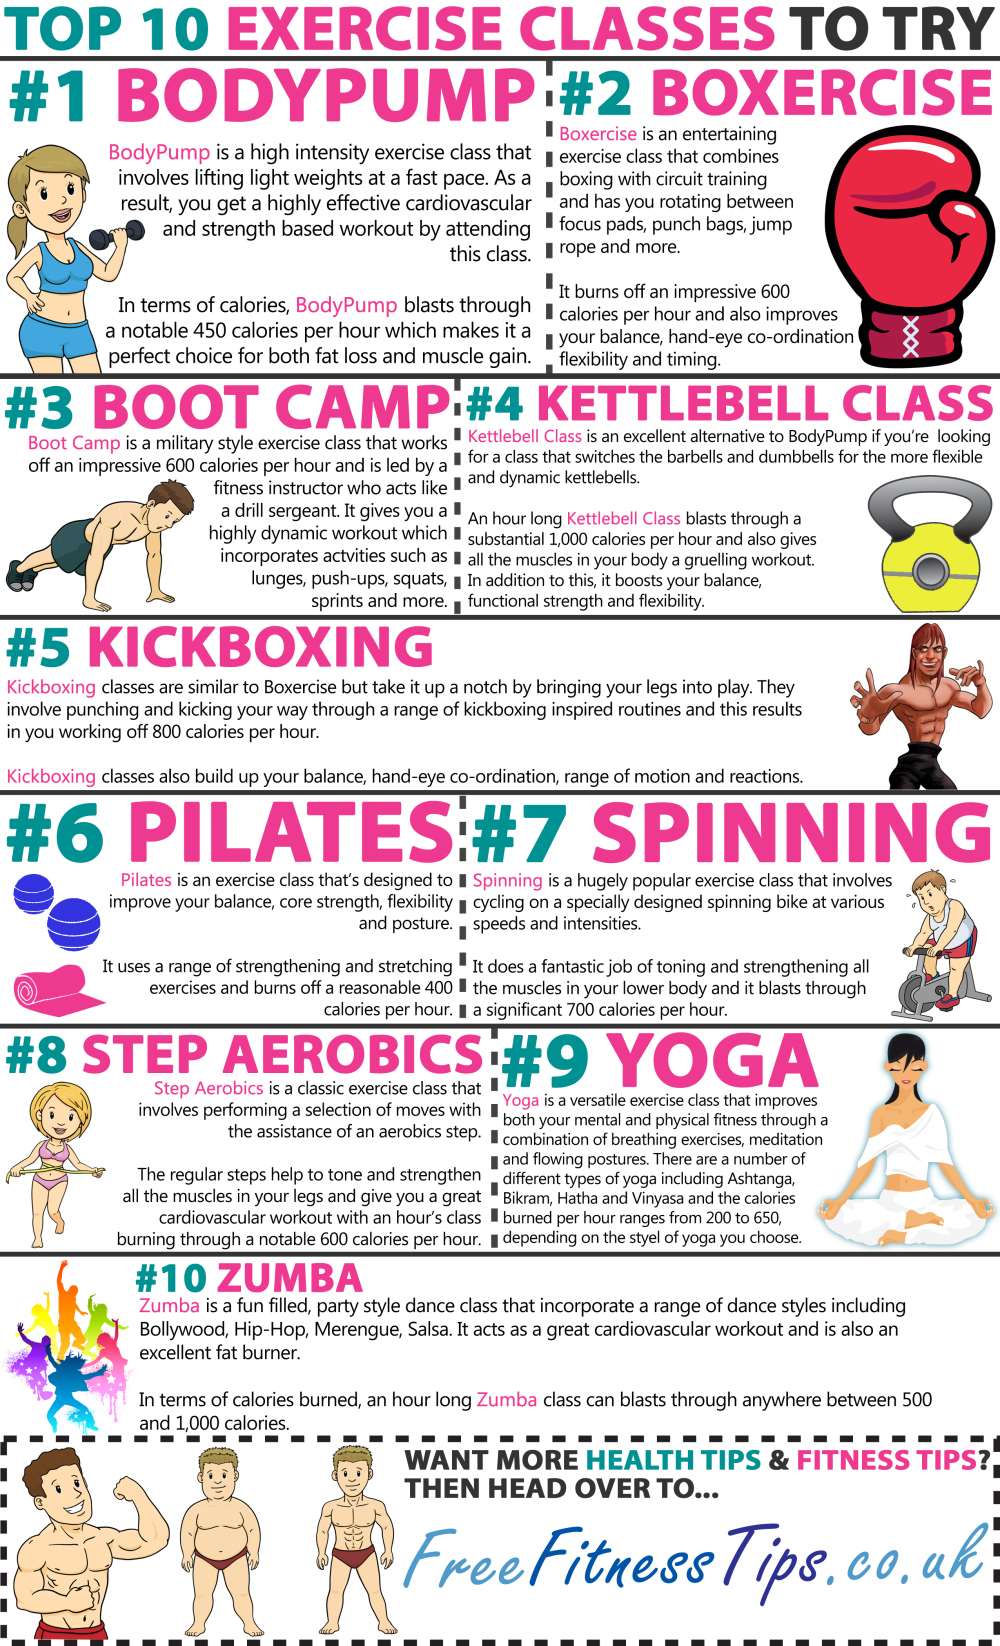 10 Fitness Classes: What's Your Exercise? - Infographic